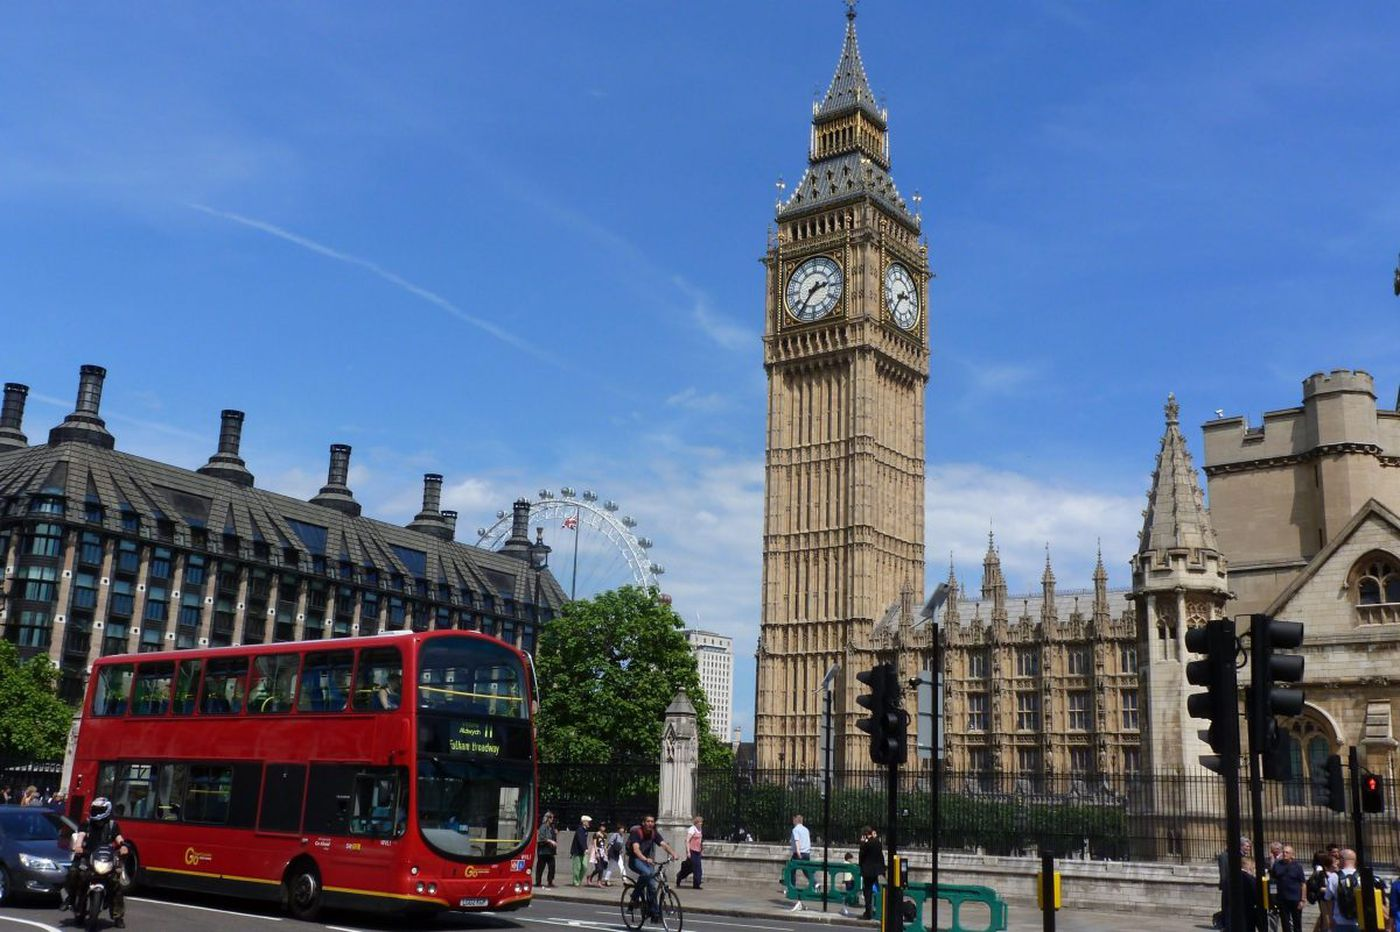 Field-tested travel tip: Calling on London